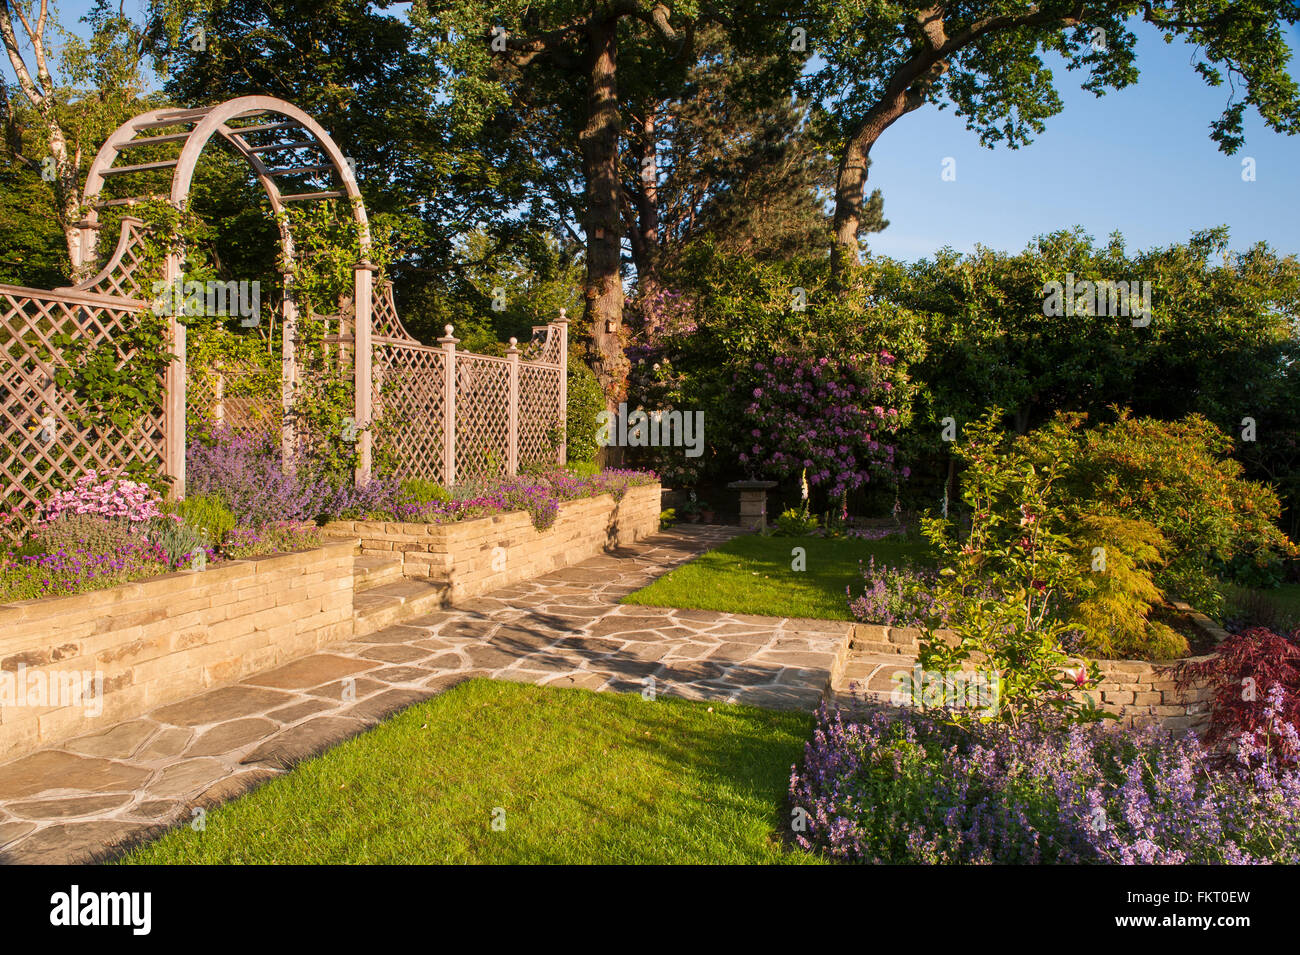 Sunlit path, flowering plants, wall, steps, trellis arch & screen - beautiful, traditional, designed, landscaped, Stock Photo